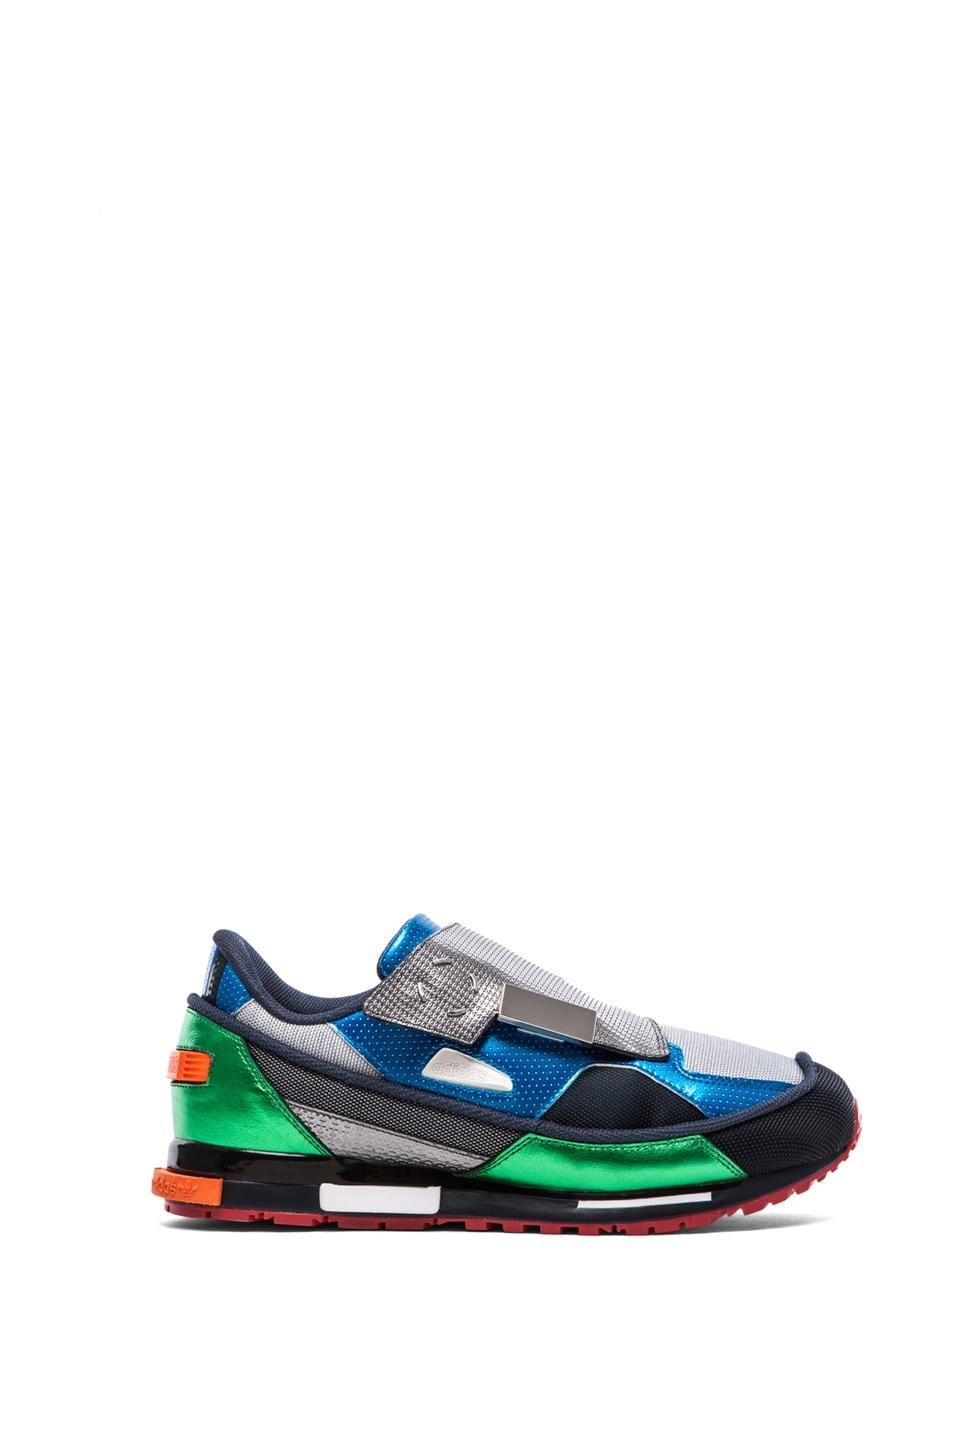 the best attitude d4e11 0bf3e adidas by Raf Simons Rising Star 2 in Light Grey & Black ...